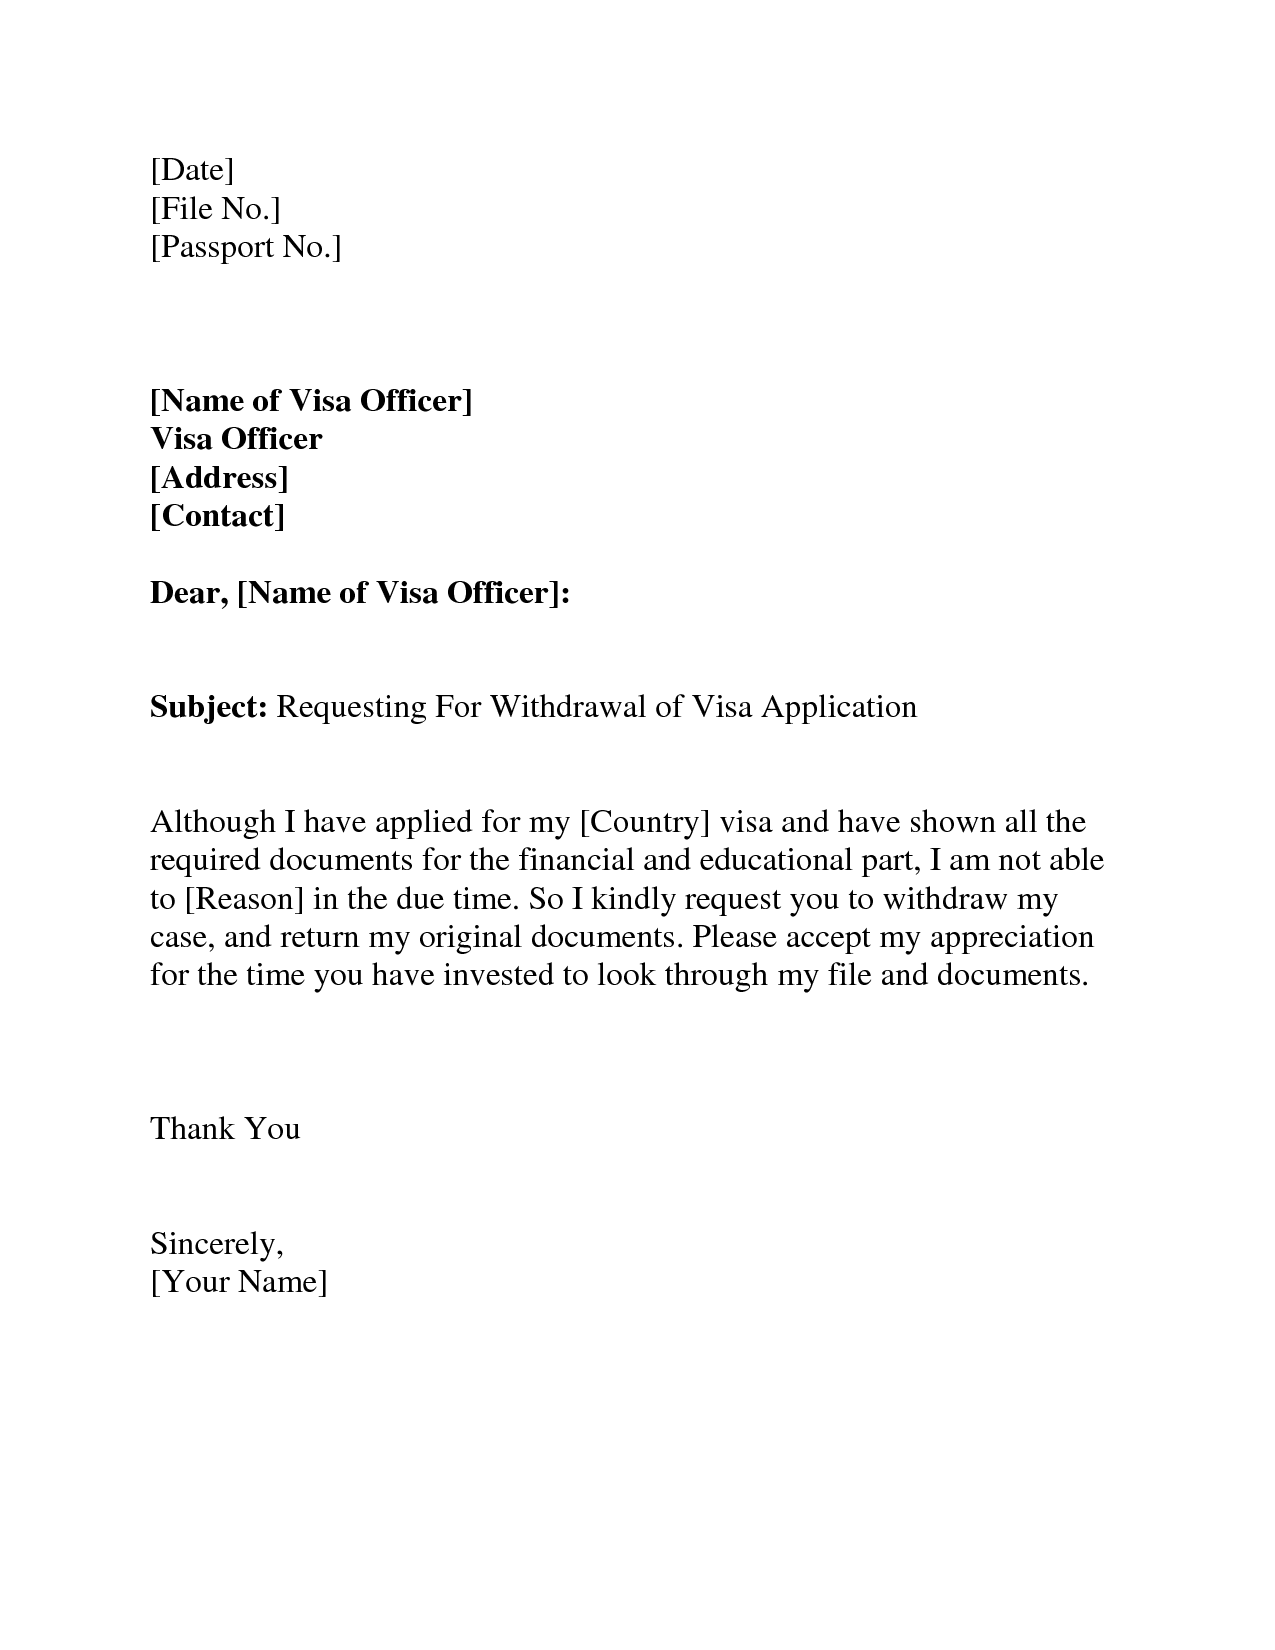 Visa withdrawal letter request letter format letter and emailvisa visa withdrawal letter request letter format letter and emailvisa invitation letter to a friend example application spiritdancerdesigns